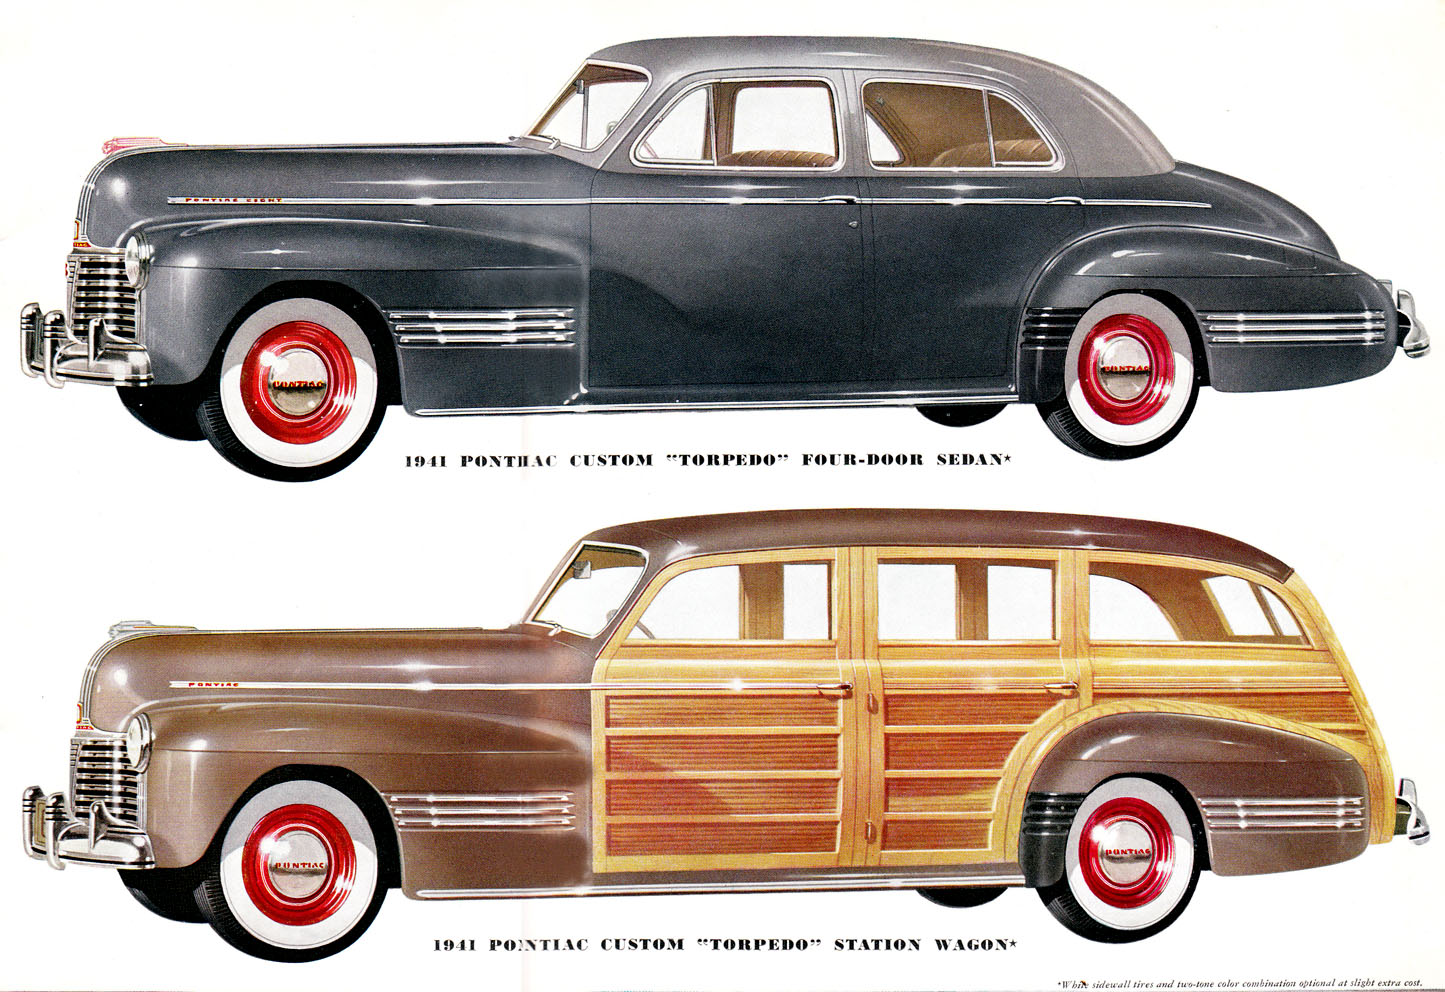 Diecast Car Forums Richard There Are Inconsistencies With Wikis 1941 Oldsmobile Station Wagon Was C Body Styling On B O P Chevy A Bodies For 42 But Only That One Short Year Pontiac Called It The